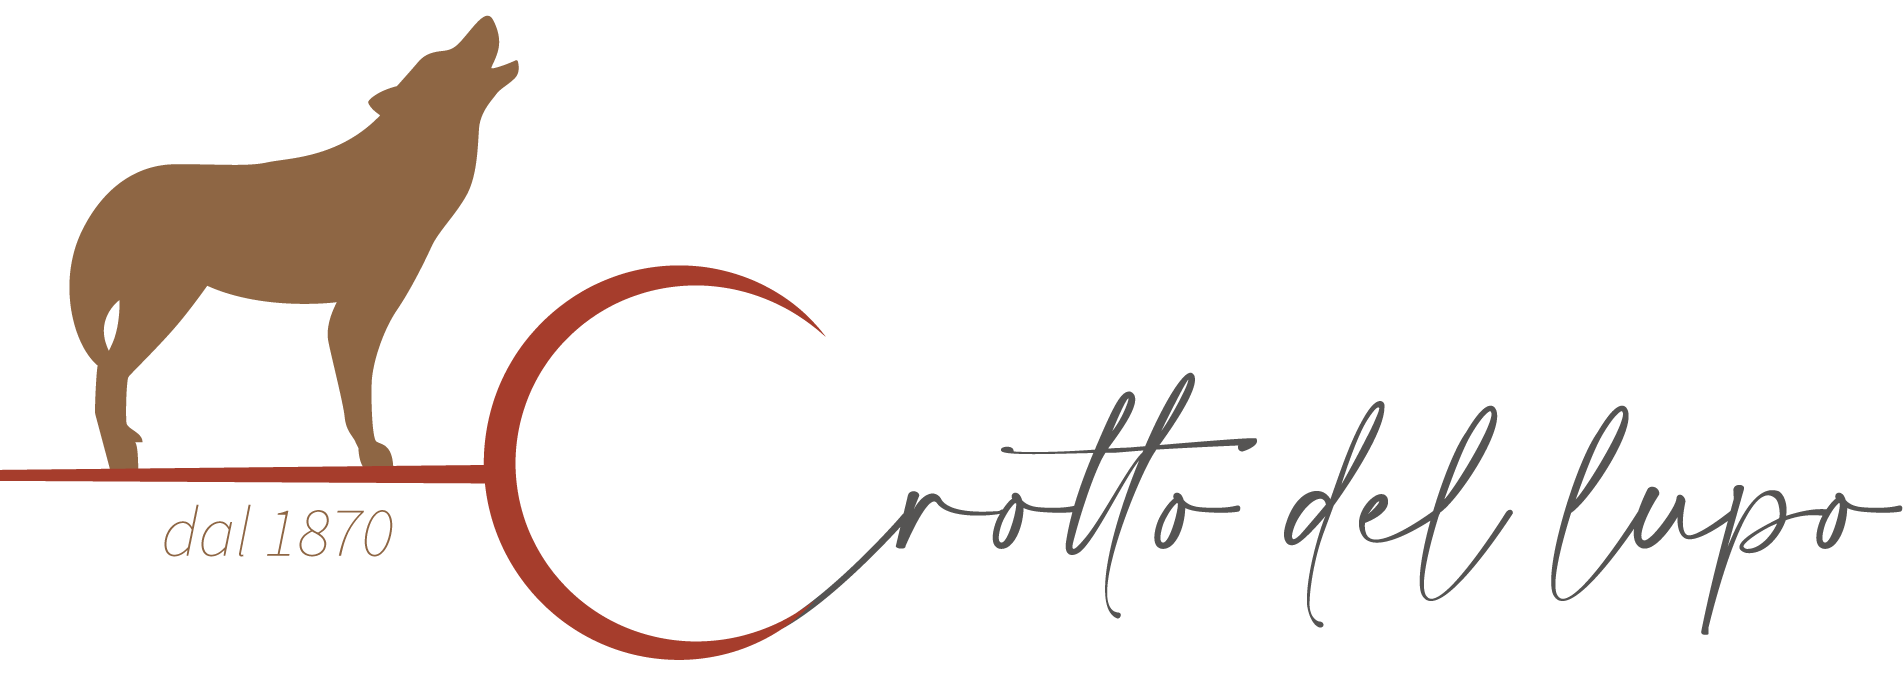 Crotto del lupo - logo_final-01